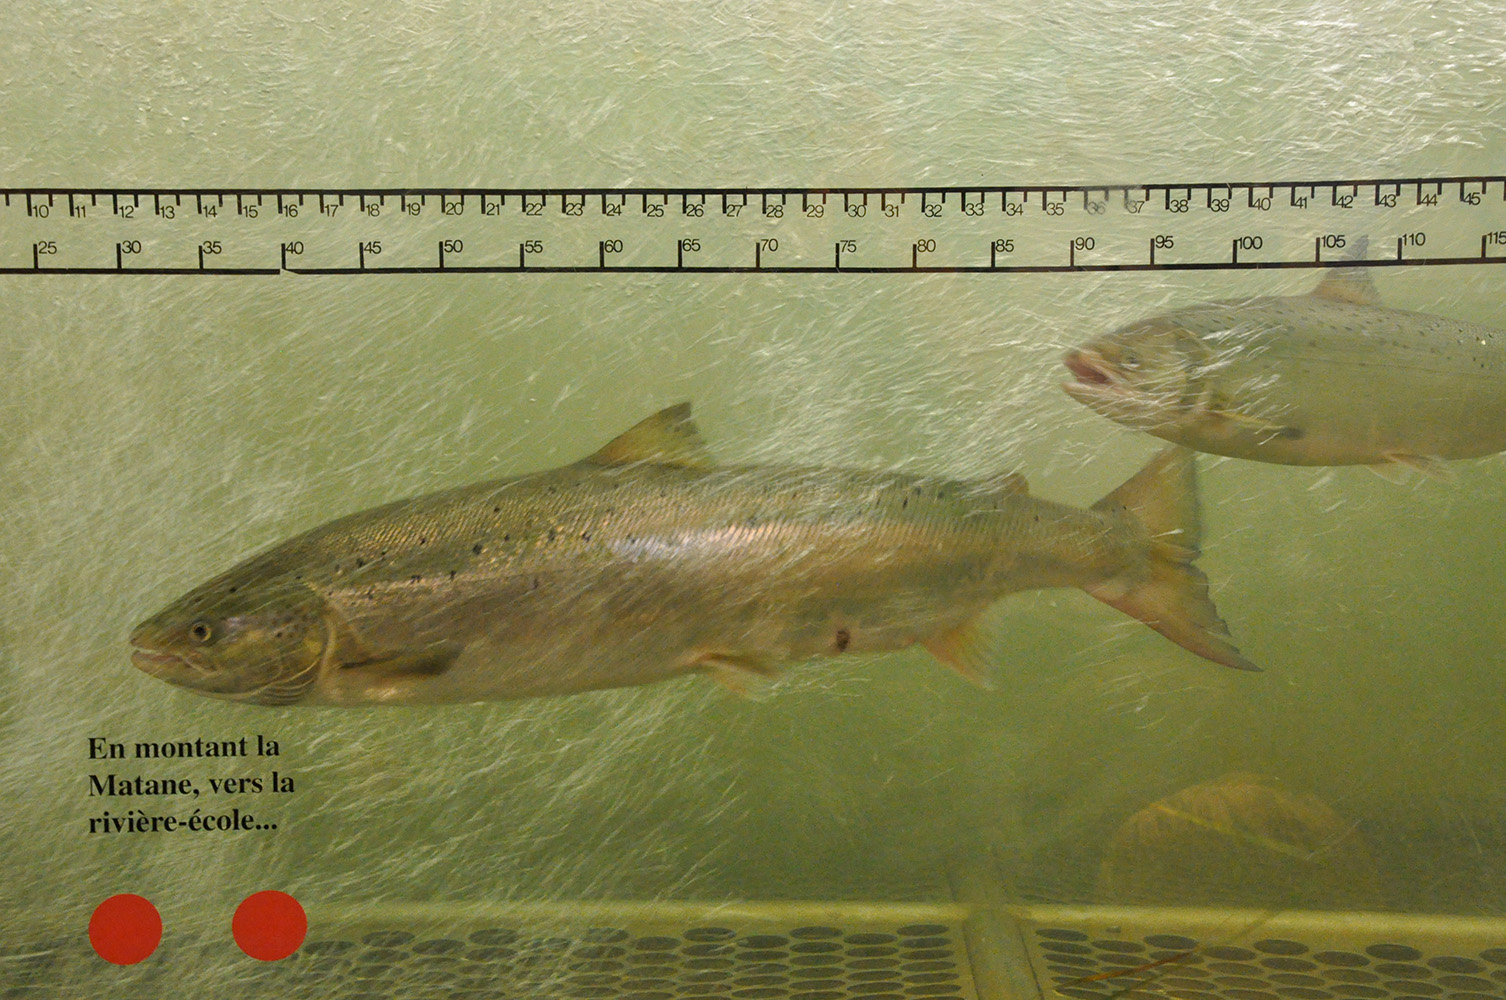 Colour photograph of two salmon passing in front of the observation window of the Matane fish ladder.